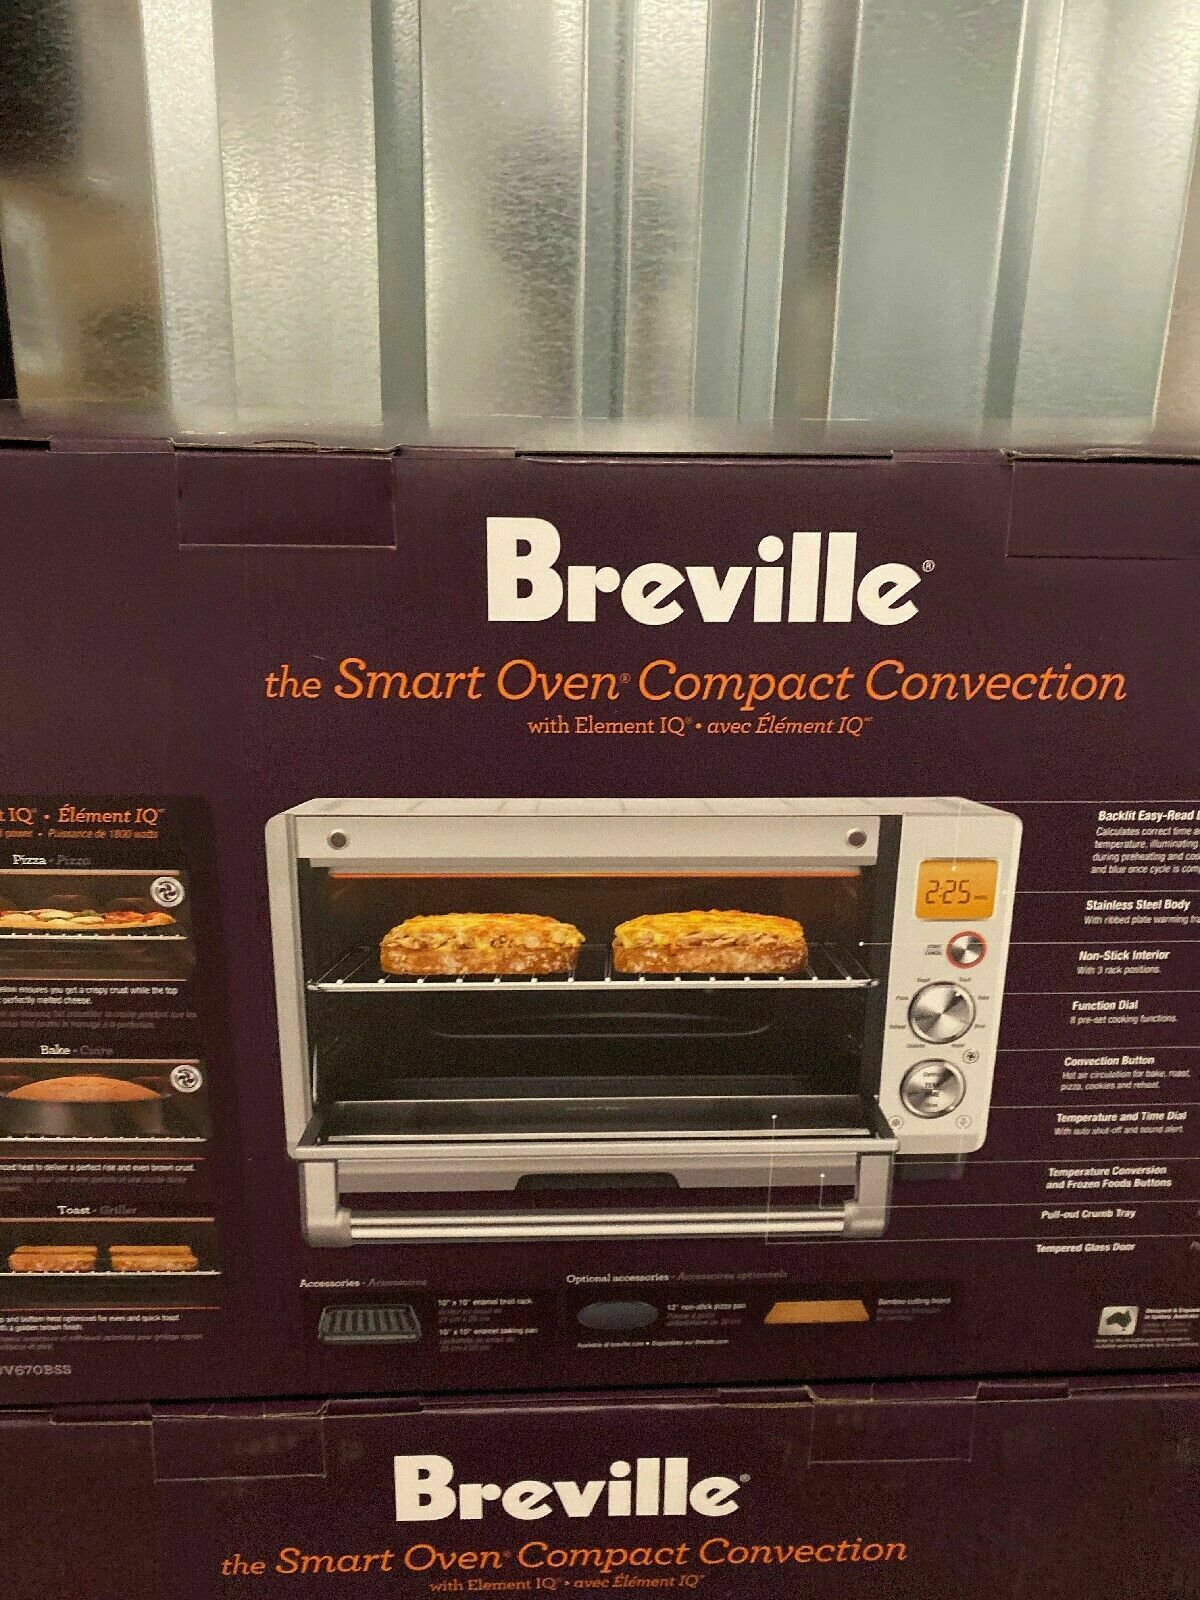 New Breville Compact Convection Smart Toaster Oven BOV670BSS